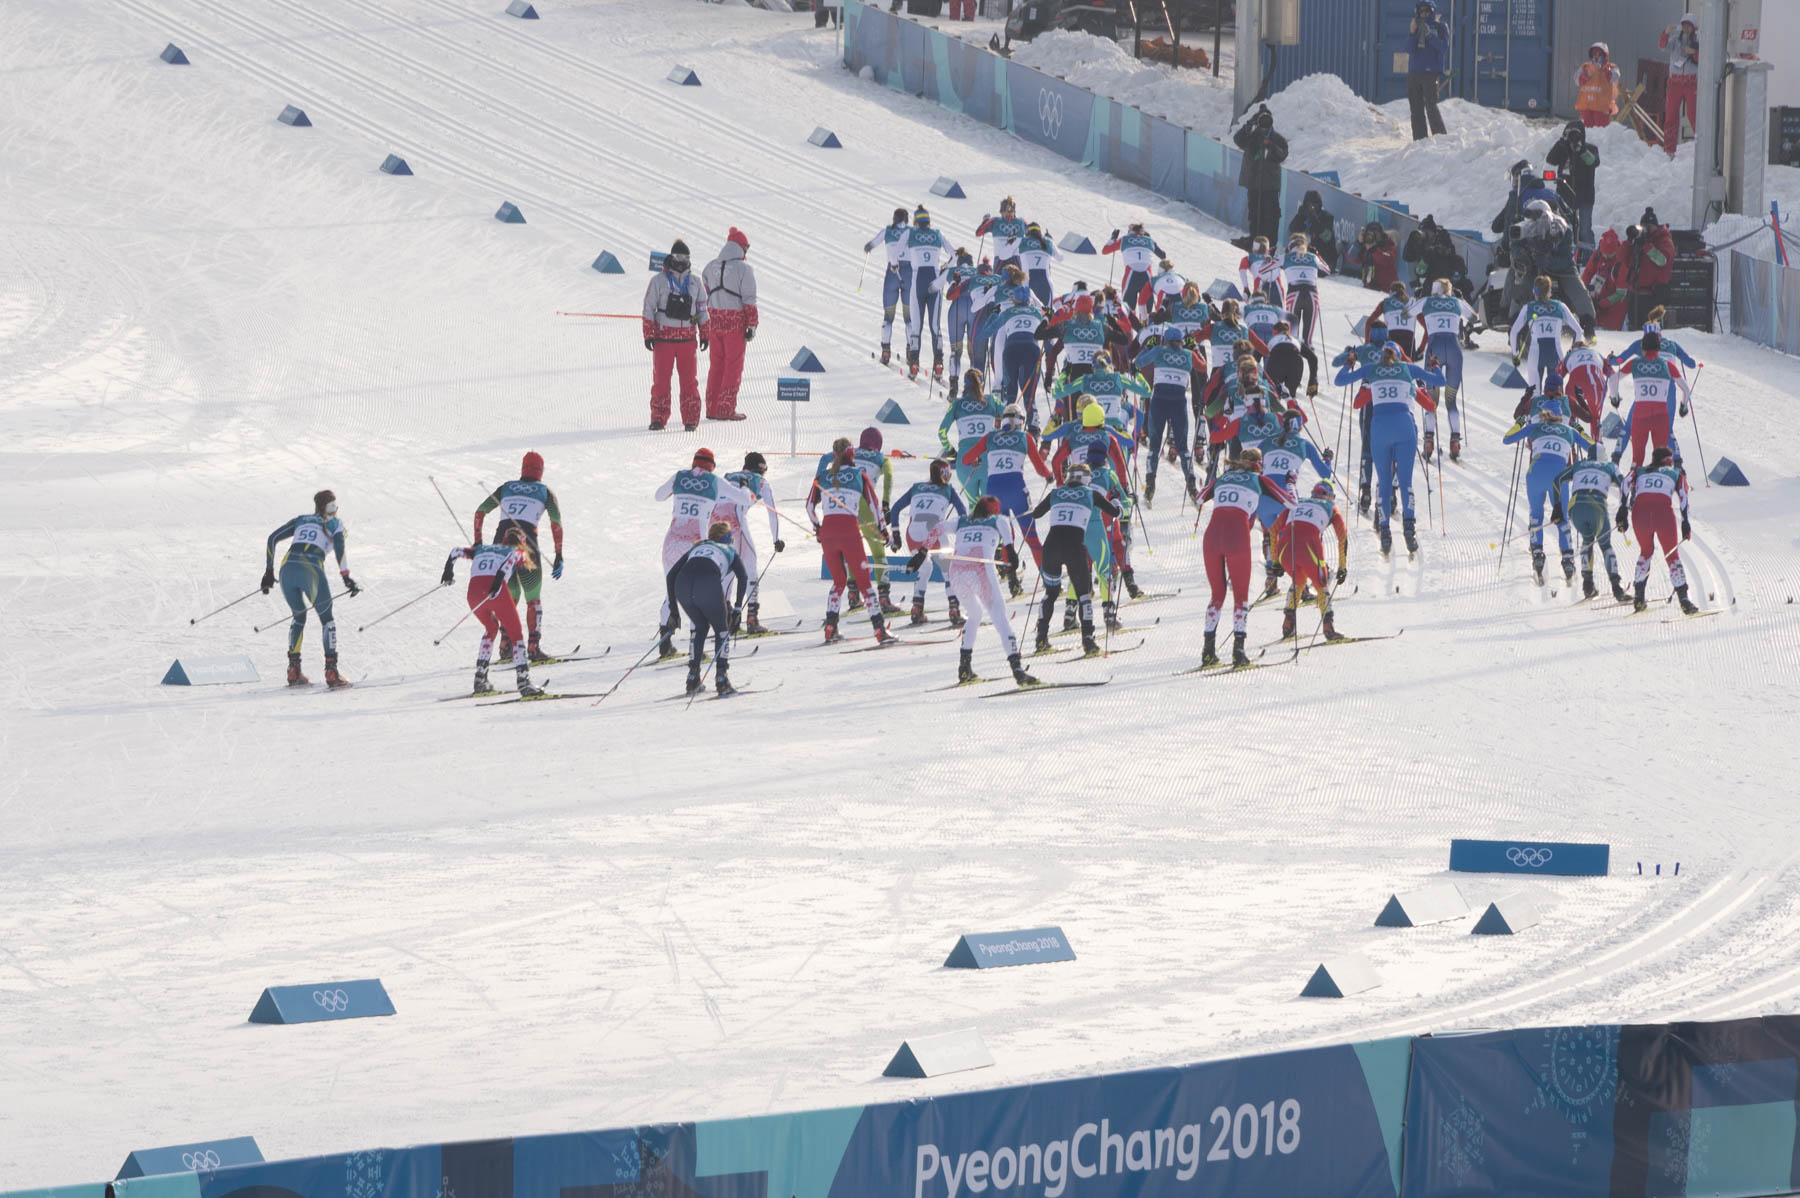 The sporting event was held at Alpensia Cross-Country Centre.